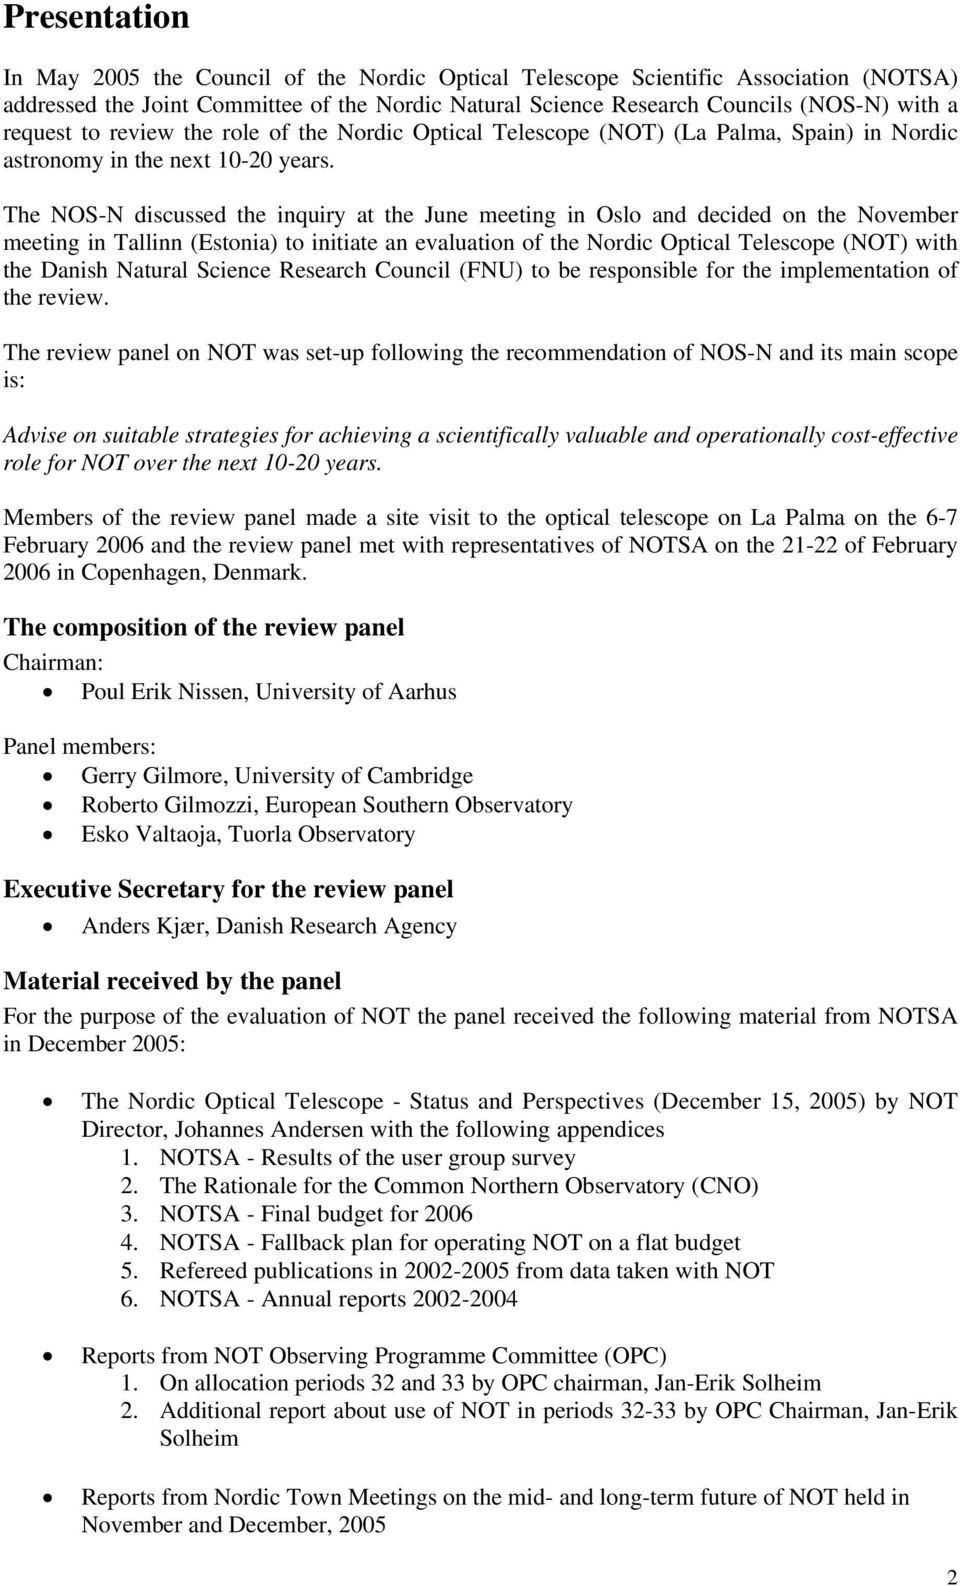 The NOS-N discussed the inquiry at the June meeting in Oslo and decided on the November meeting in Tallinn (Estonia) to initiate an evaluation of the Nordic Optical Telescope (NOT) with the Danish